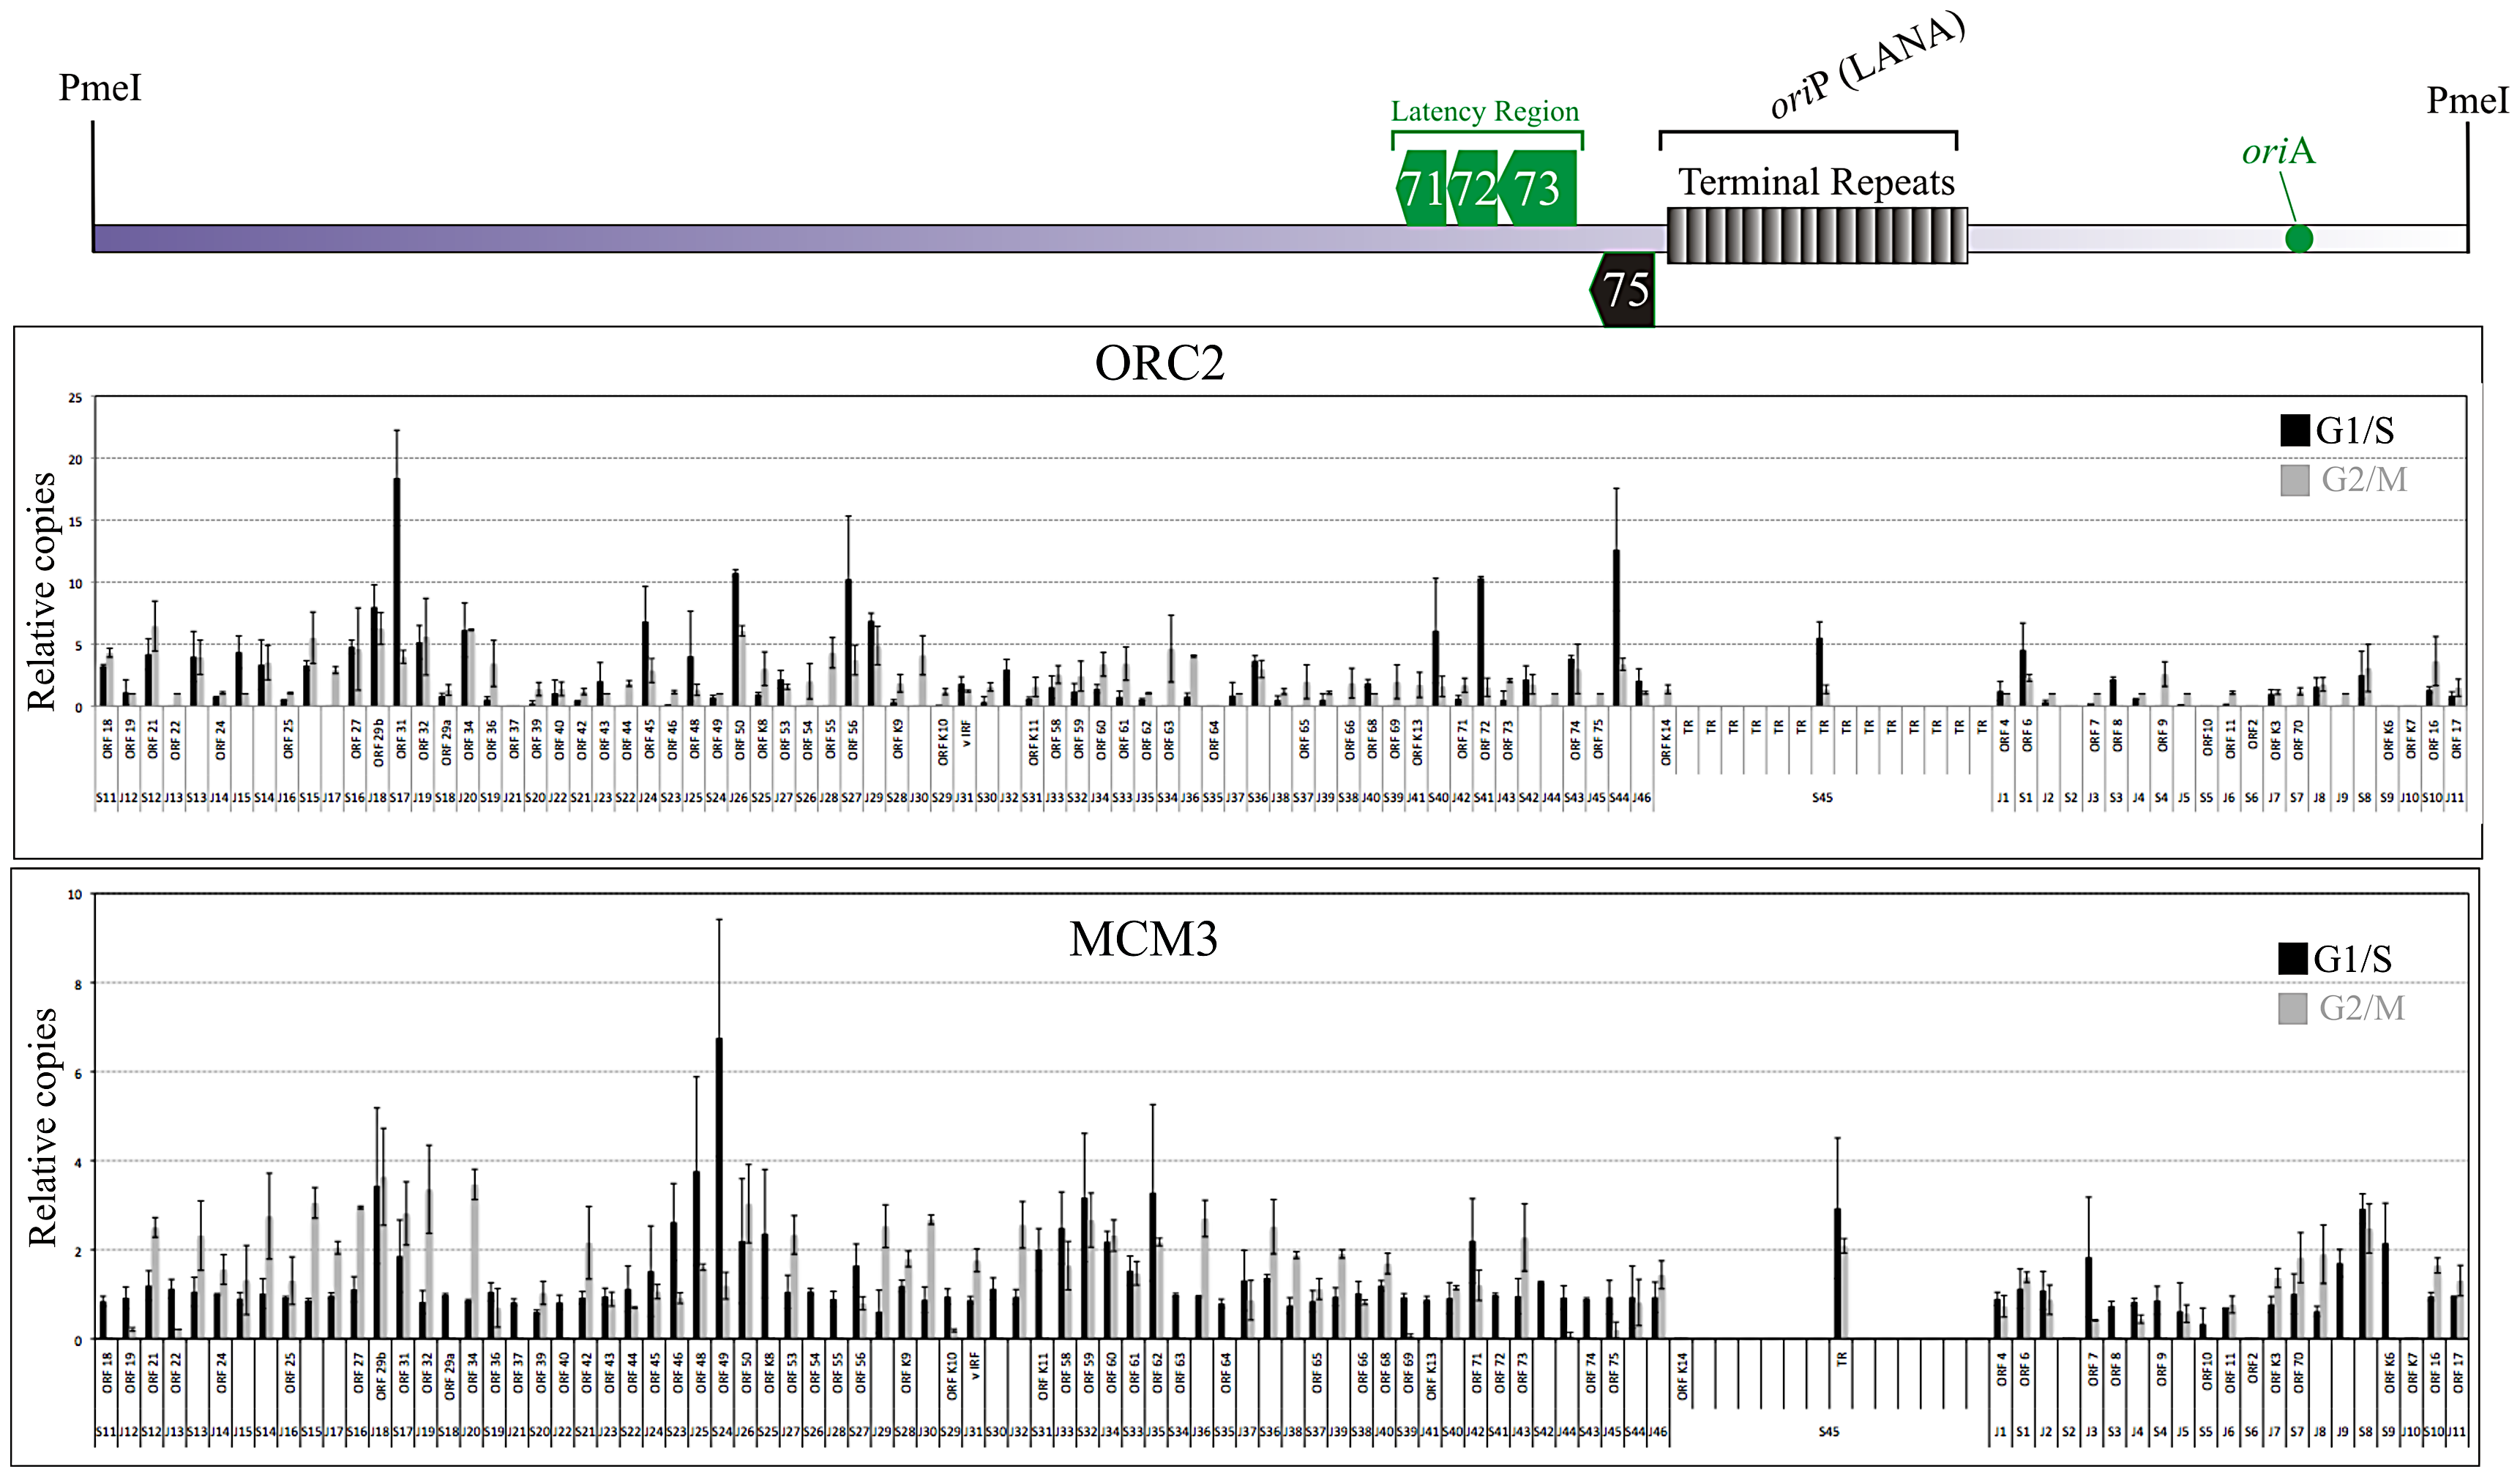 Chromatin Immunoprecipitation from G1/S and G2M enriched BCBL-1 cells using ORC2 and MCM3 antibodies.